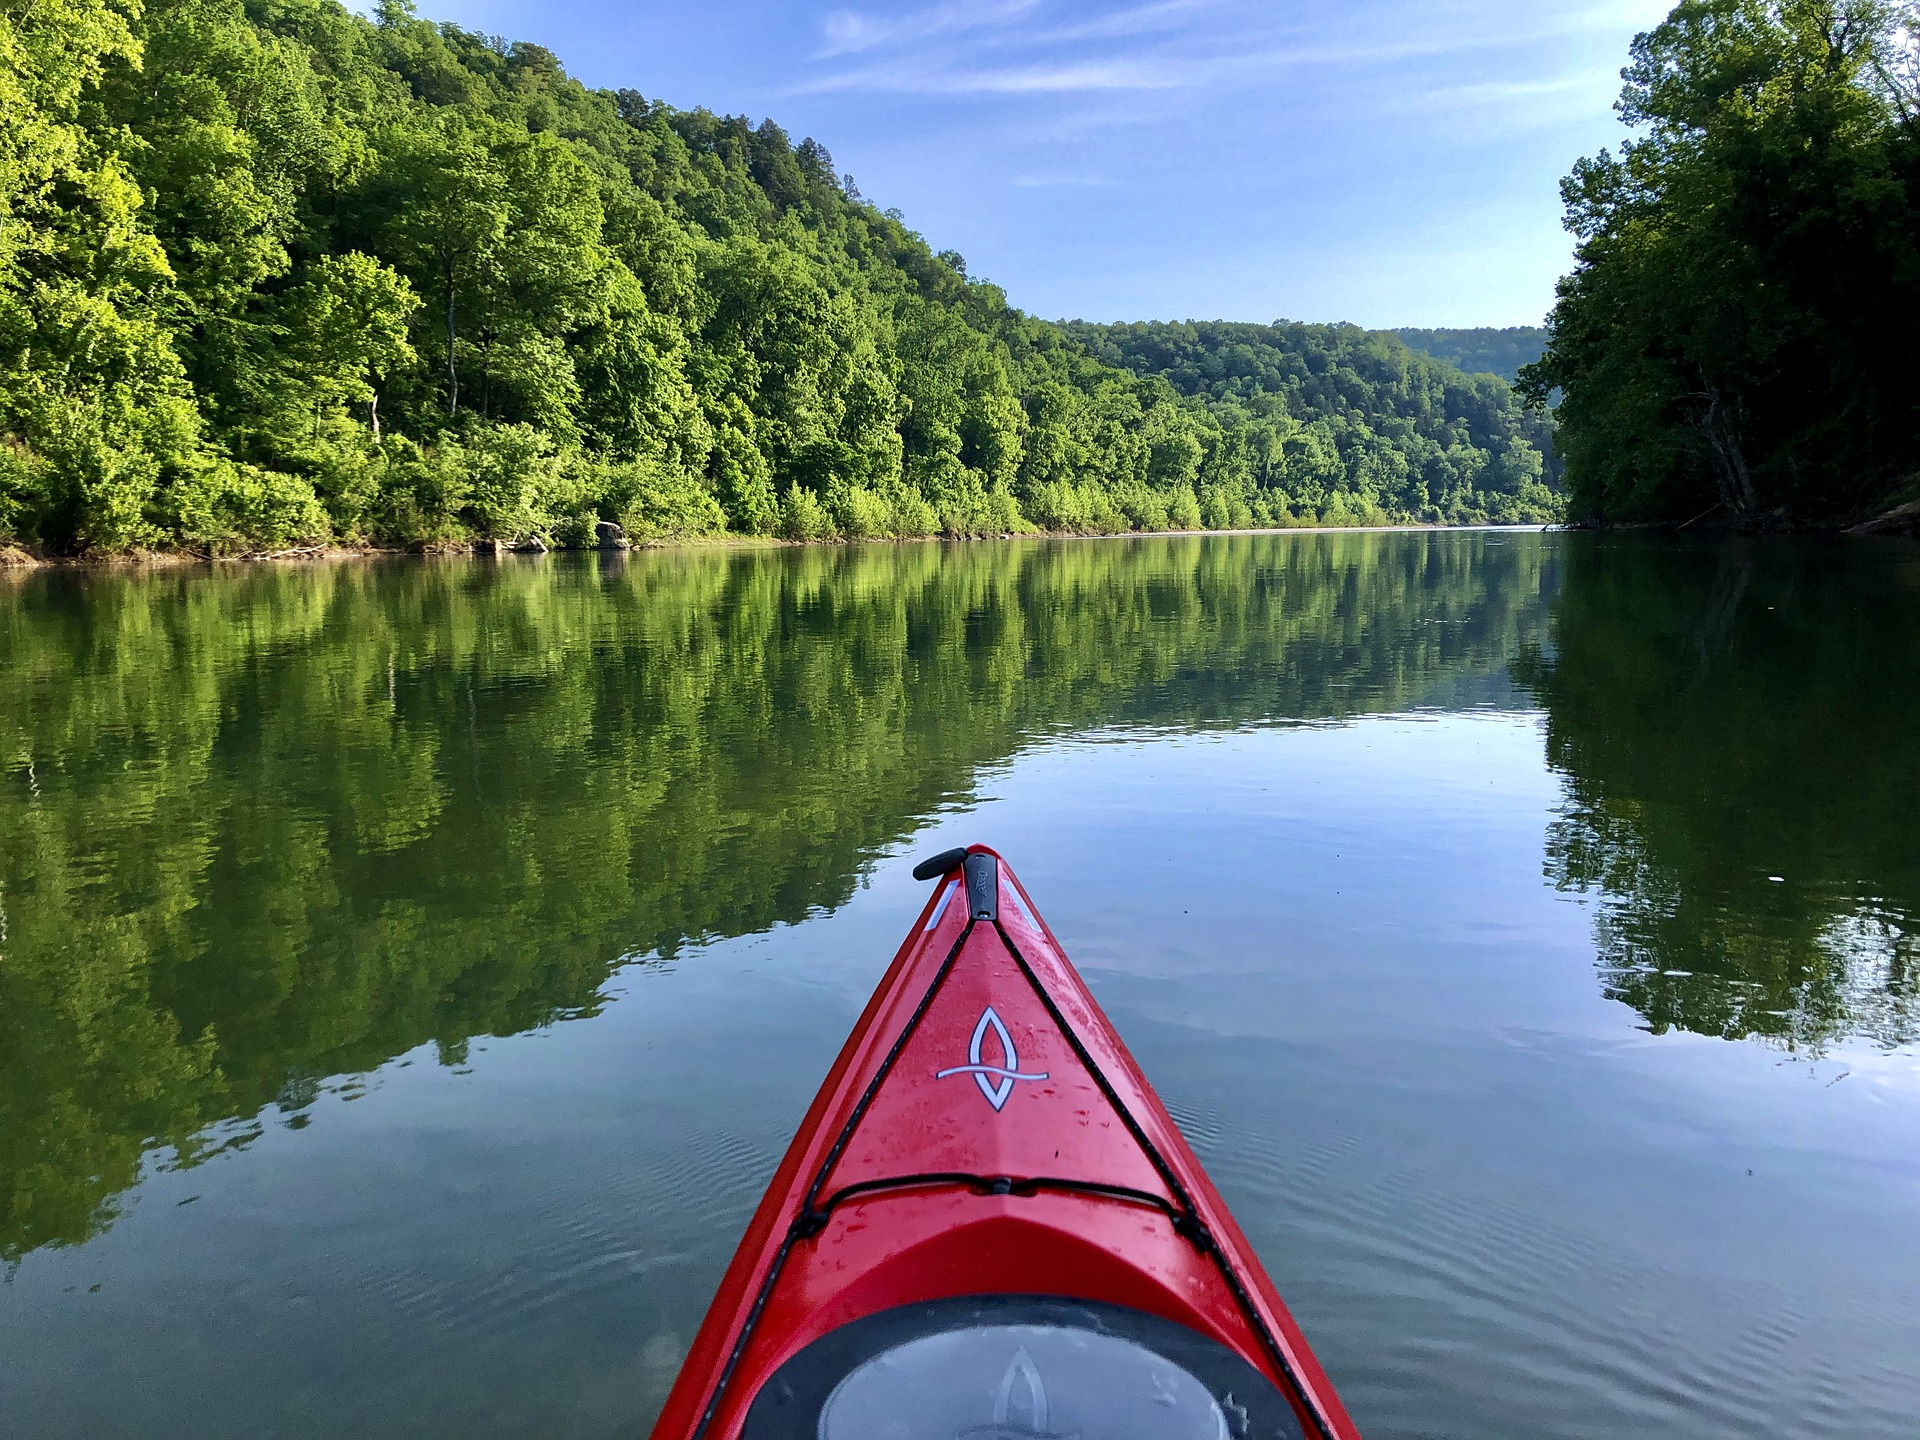 Kayaking slicing through tranquil lake fringed by thick forest.